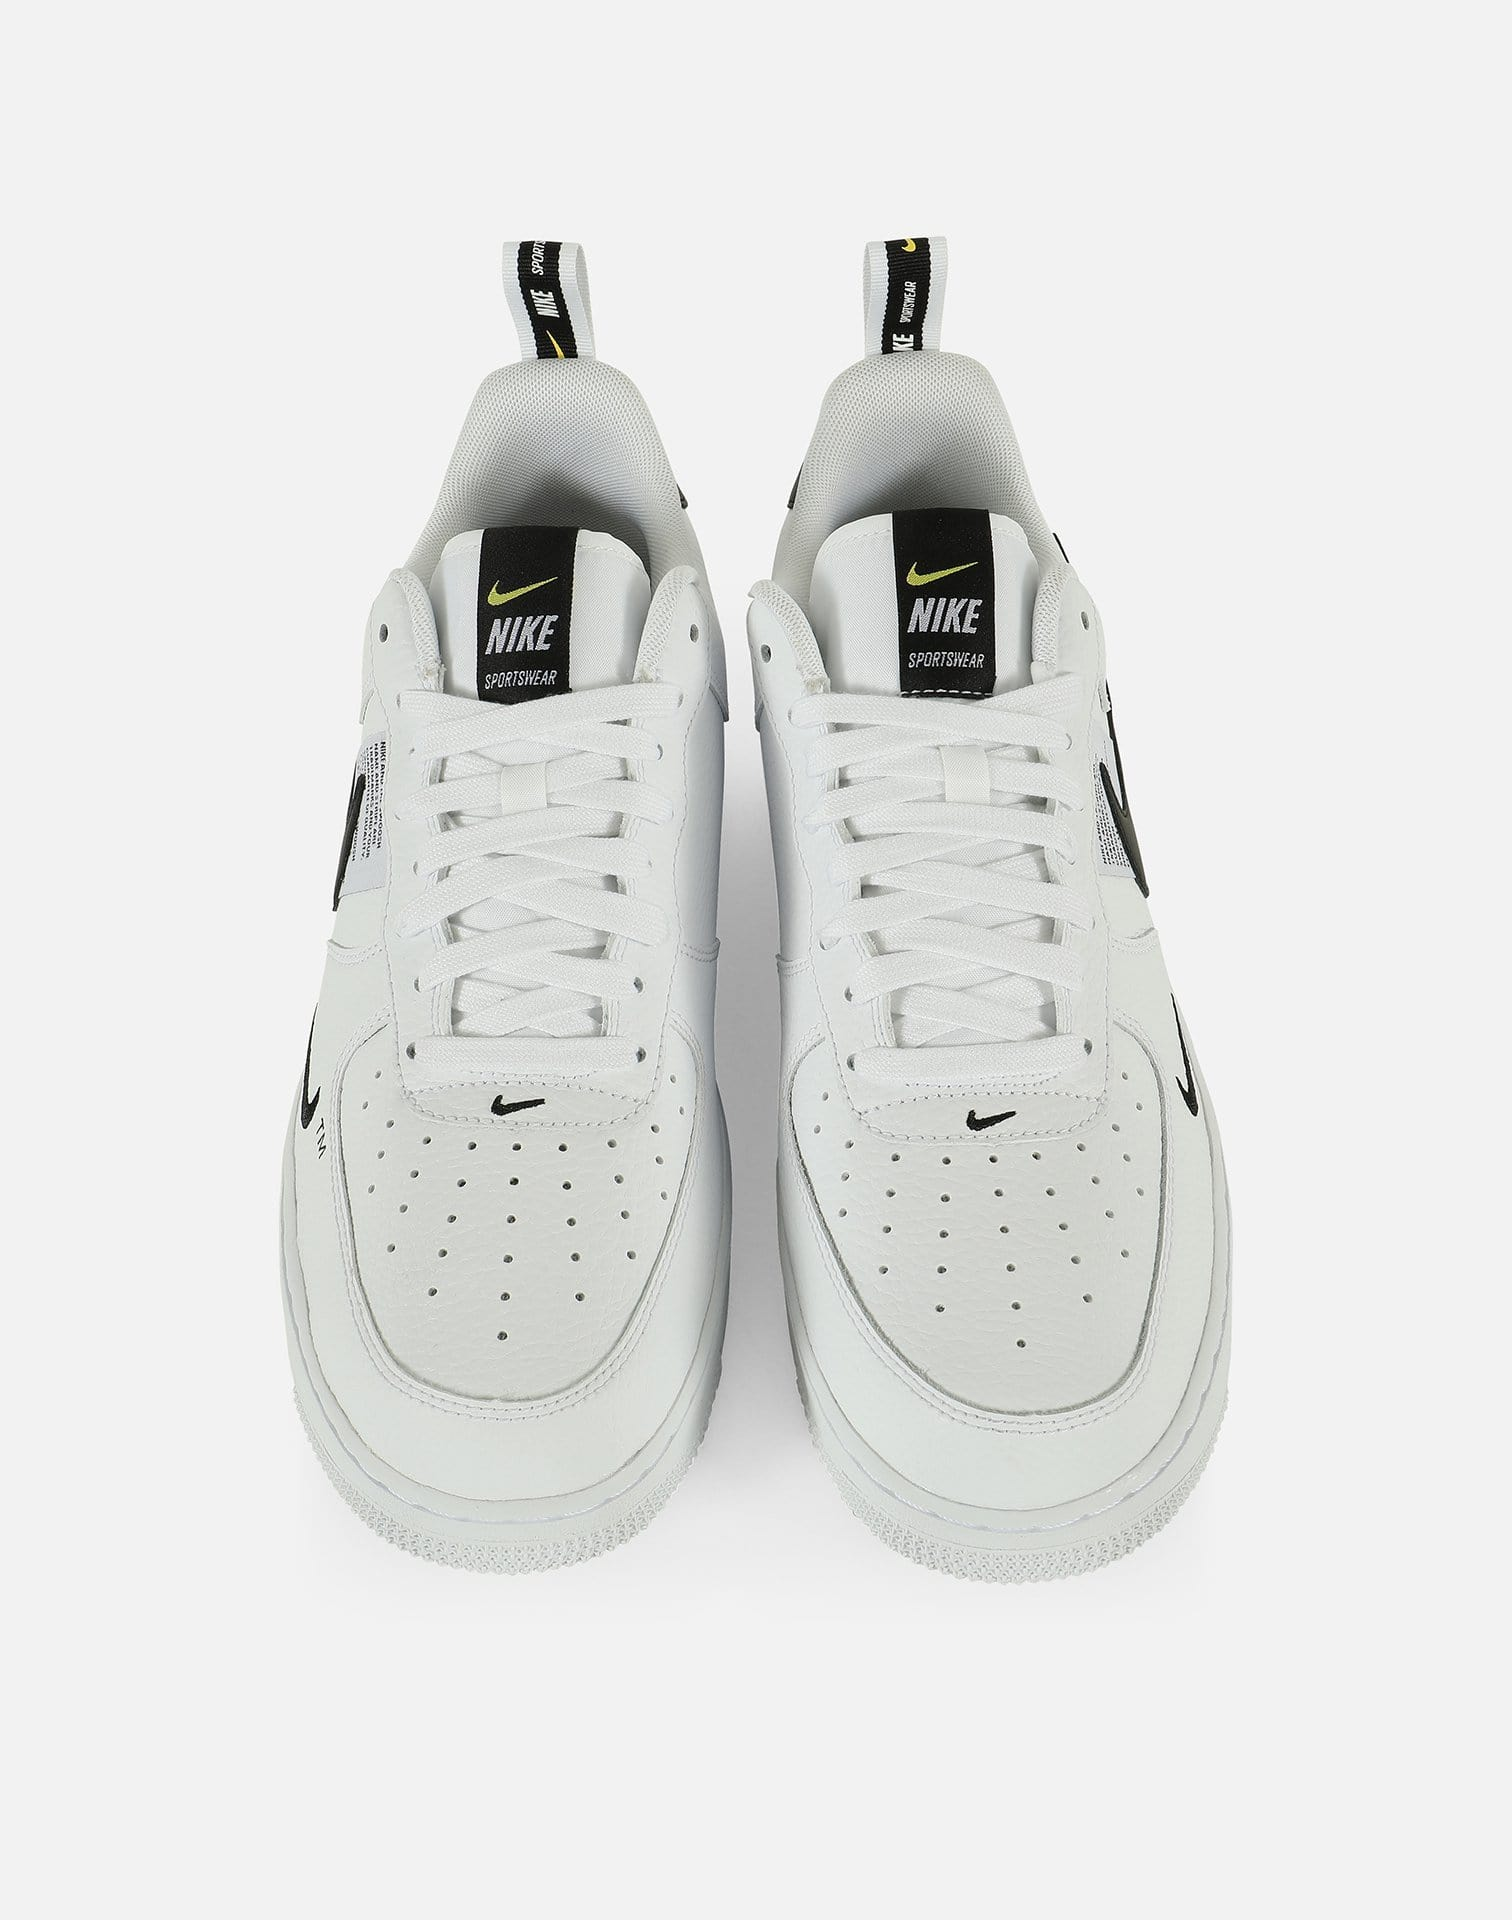 AIR FORCE 1 LOW '07 LV8 UTILITY – DTLR